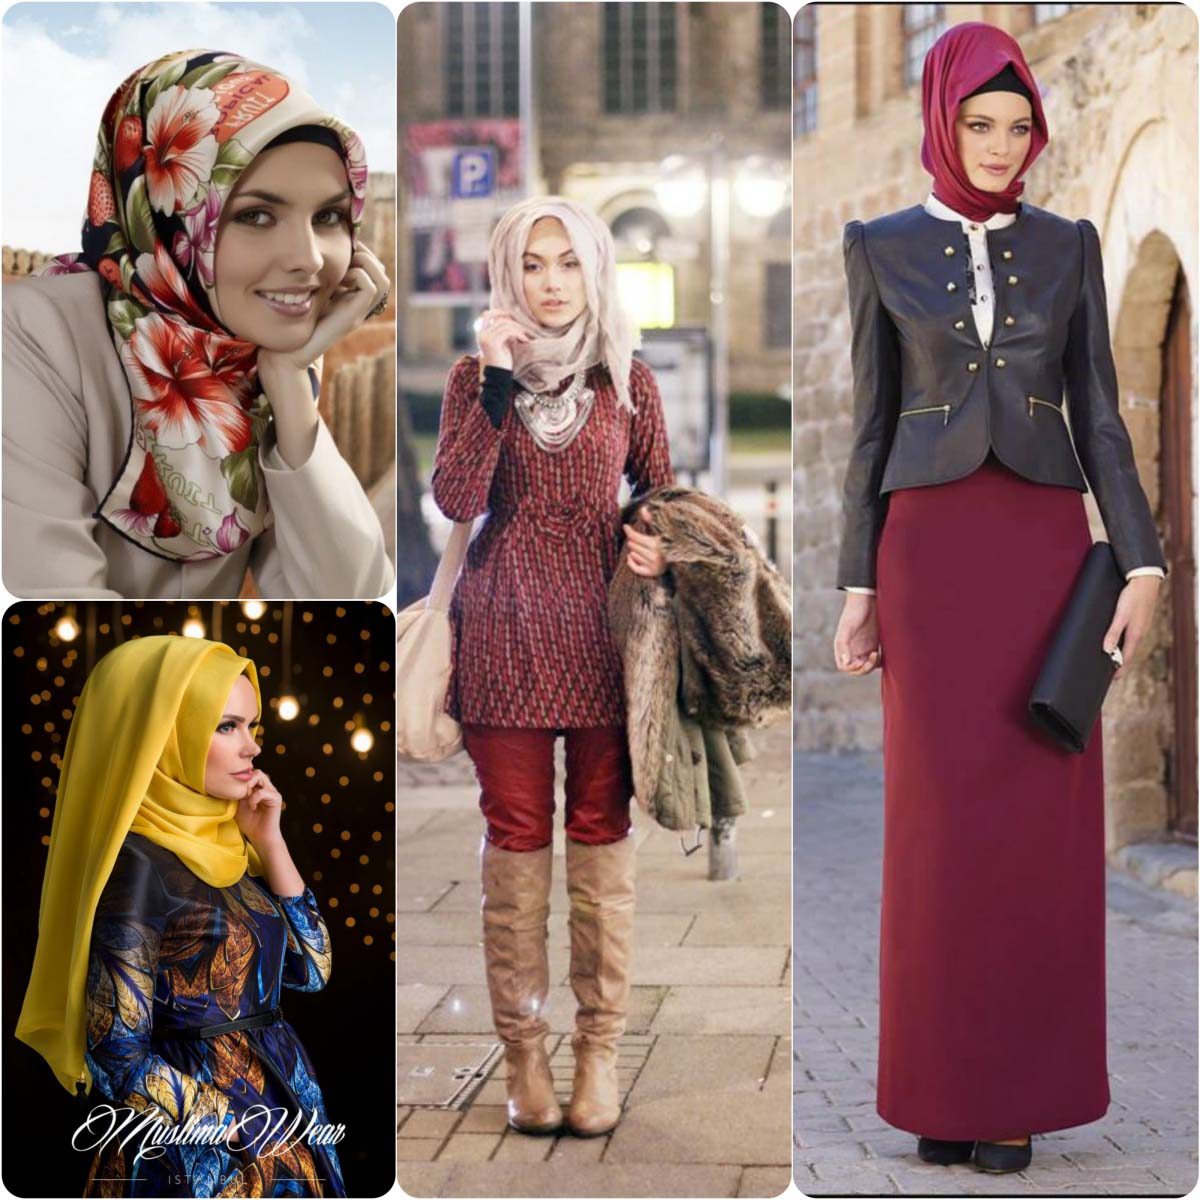 bc0111e9ab26 Winter Hijab Styles and Trends 2017 for Girls | Stylo Planet